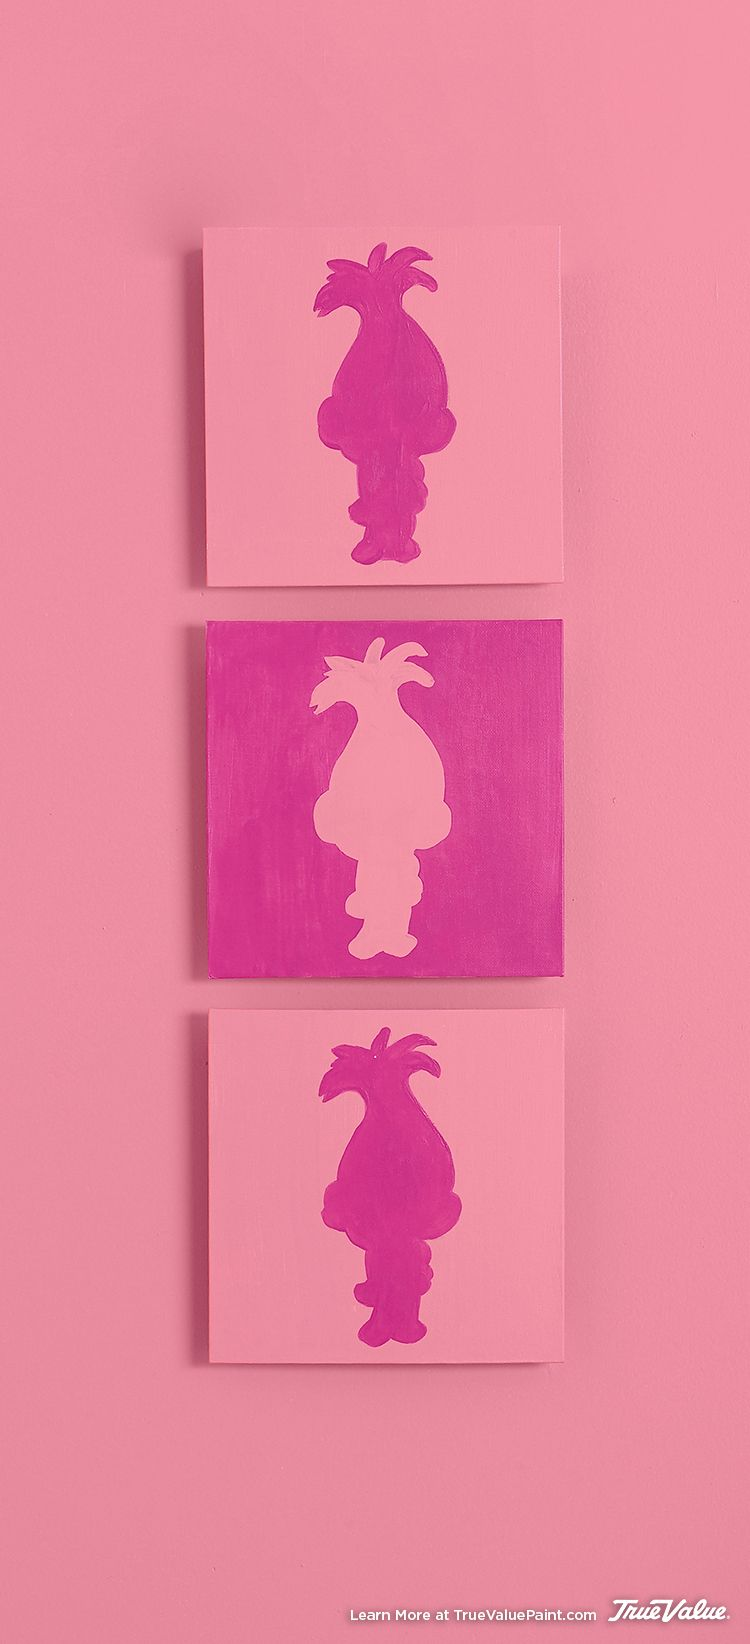 Trolls Bedroom Ideas: Create This DIY Wall Art Using DreamWorks Trolls Character